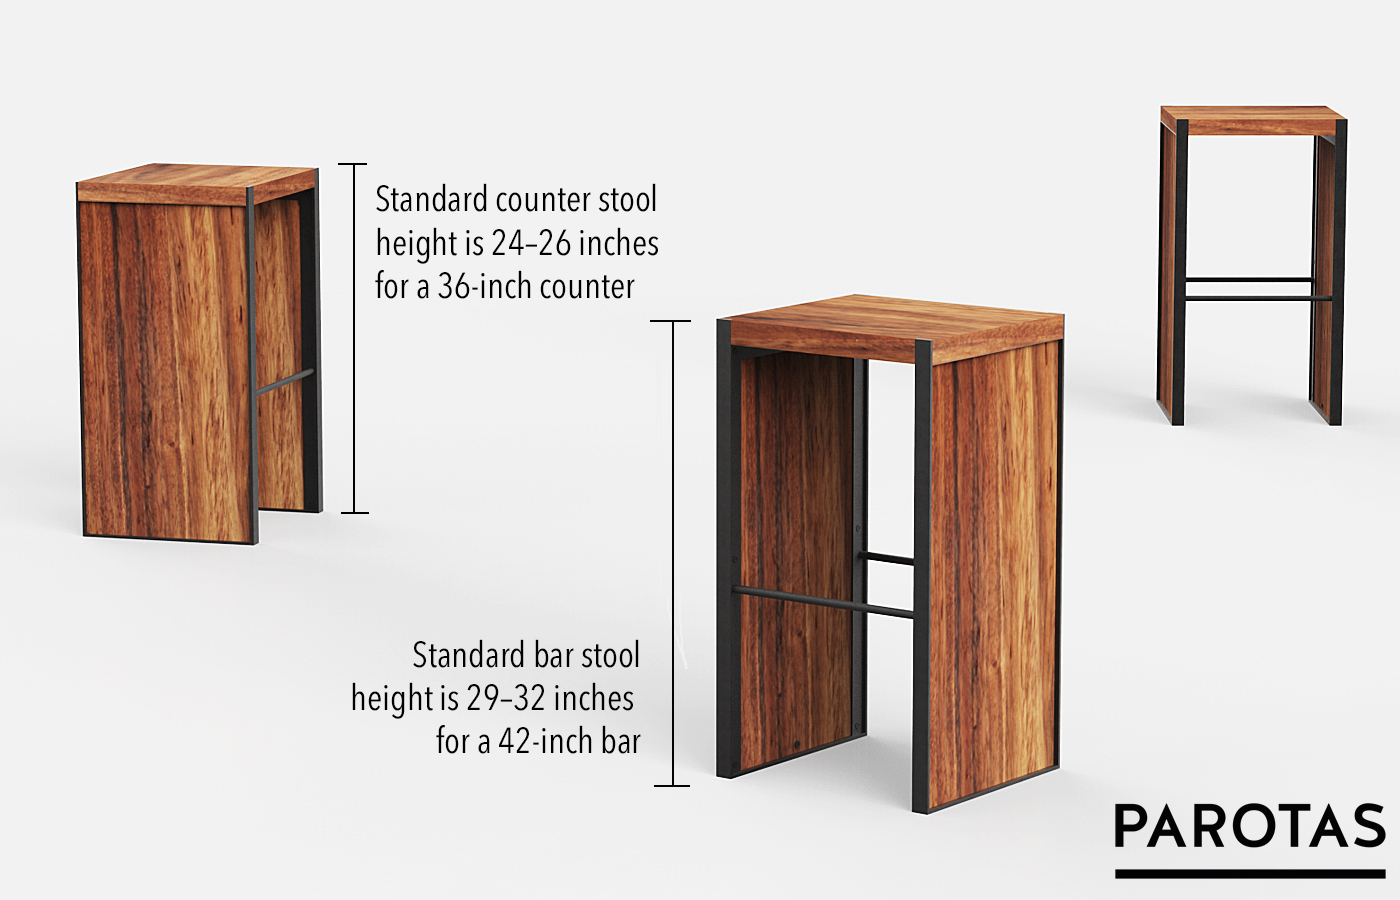 Standard Counter Stool Height